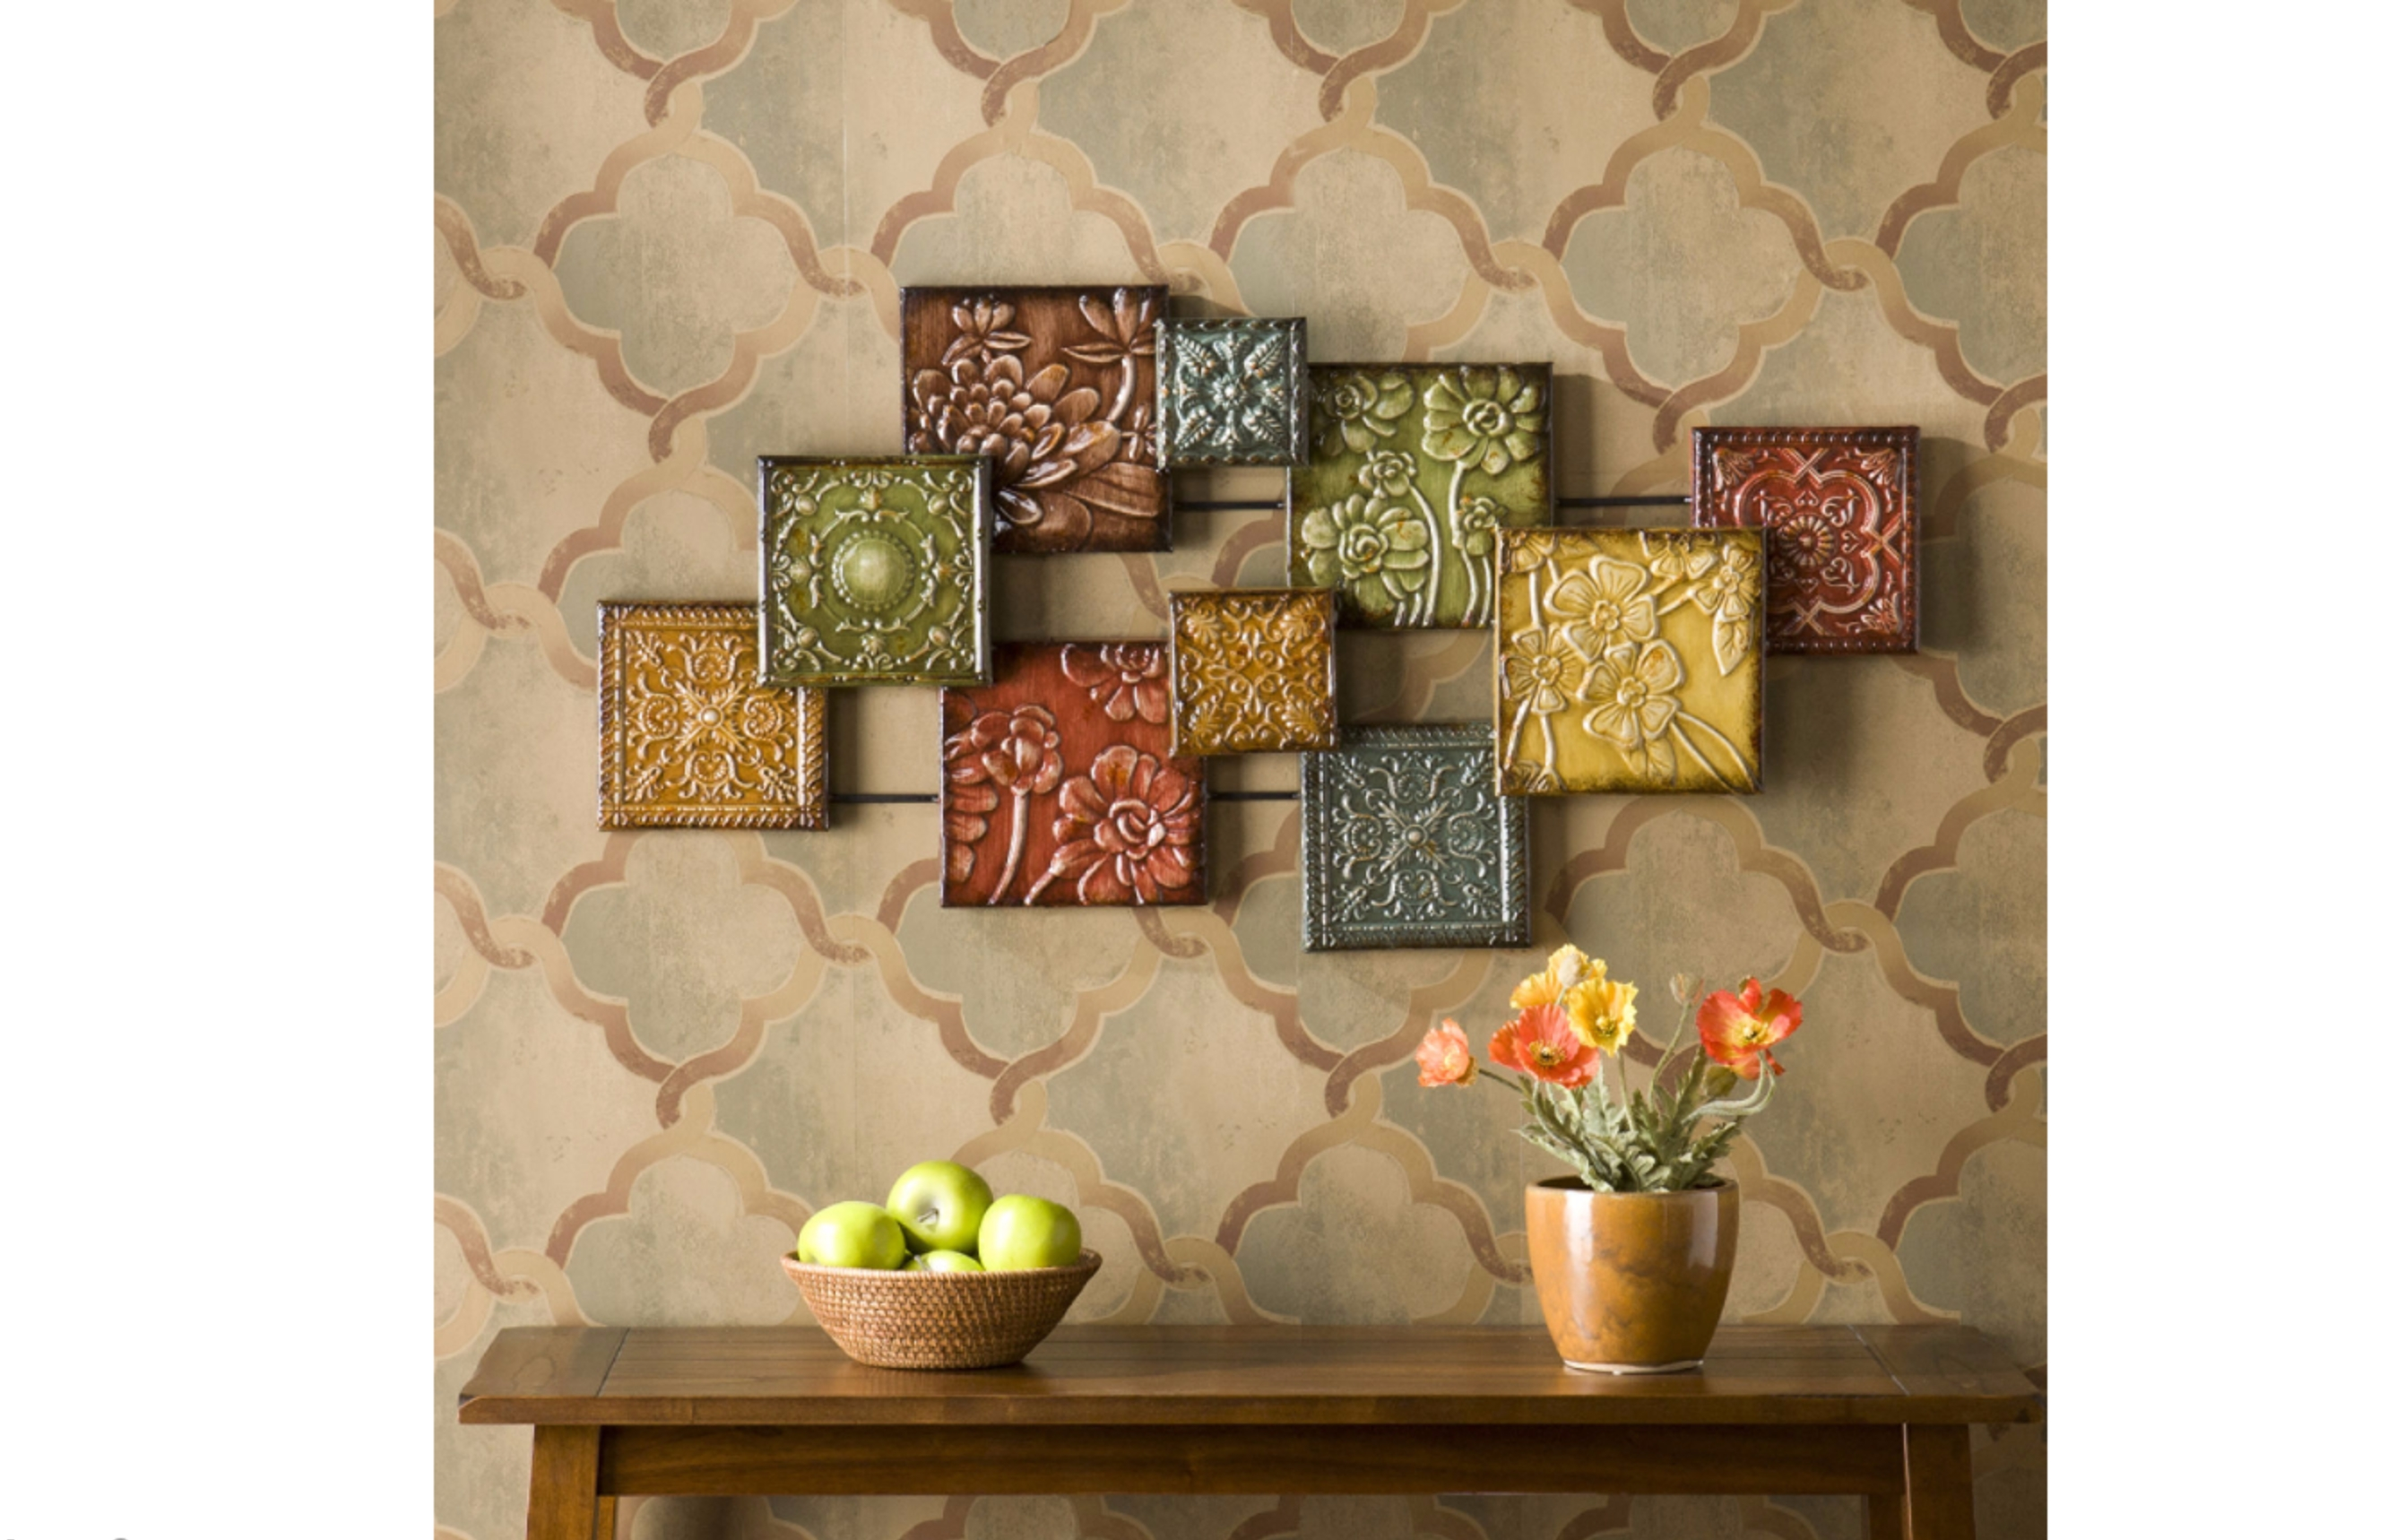 Wall Decor Ideas – Jcpenney Intended For Newest Jcpenney Canvas Wall Art (View 14 of 15)